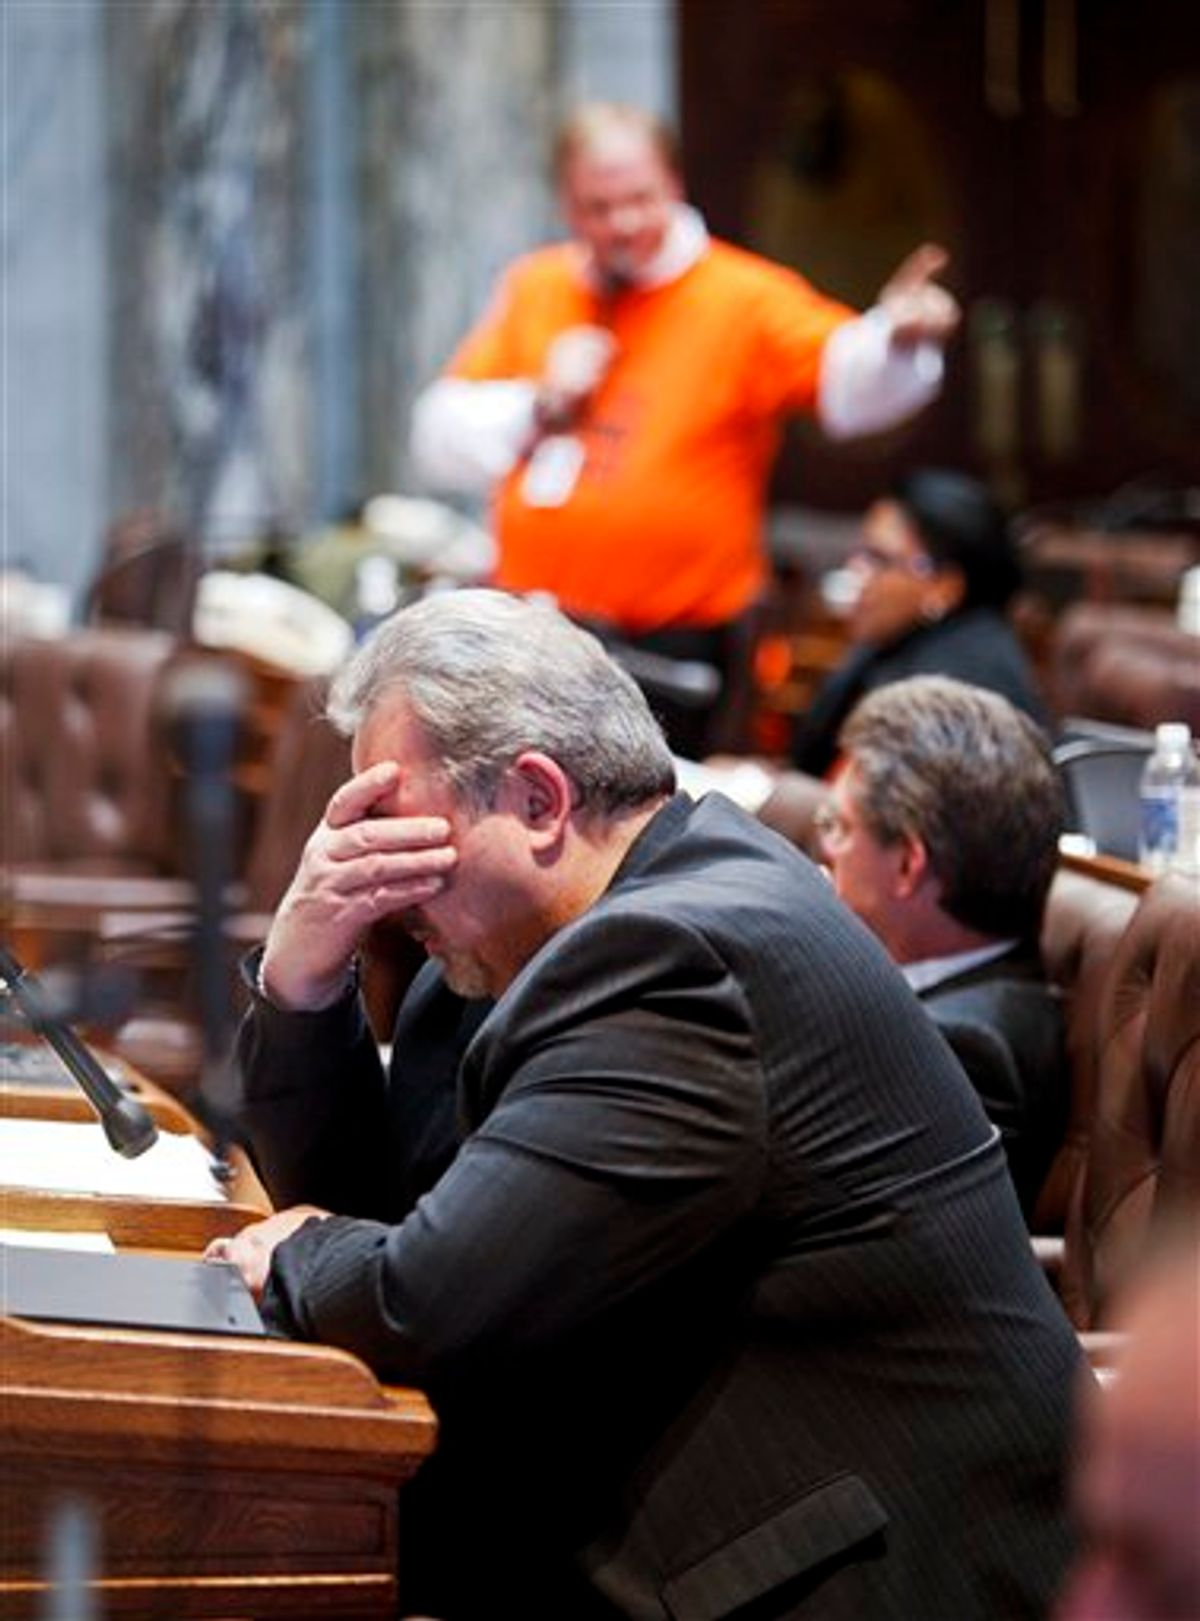 Wisconsin Rep. Mark Honadel, R-South Milwaukee, rubs his eyes during the 23rd hour of debate in the Assembly at the state Capitol in Madison, Wis., Wednesday, Feb. 23, 2011. Opponents to the governor's bill to eliminate collective bargaining rights for many state workers are on their ninth day of protests at the Capitol. (AP Photo/Andy Manis)  (AP)